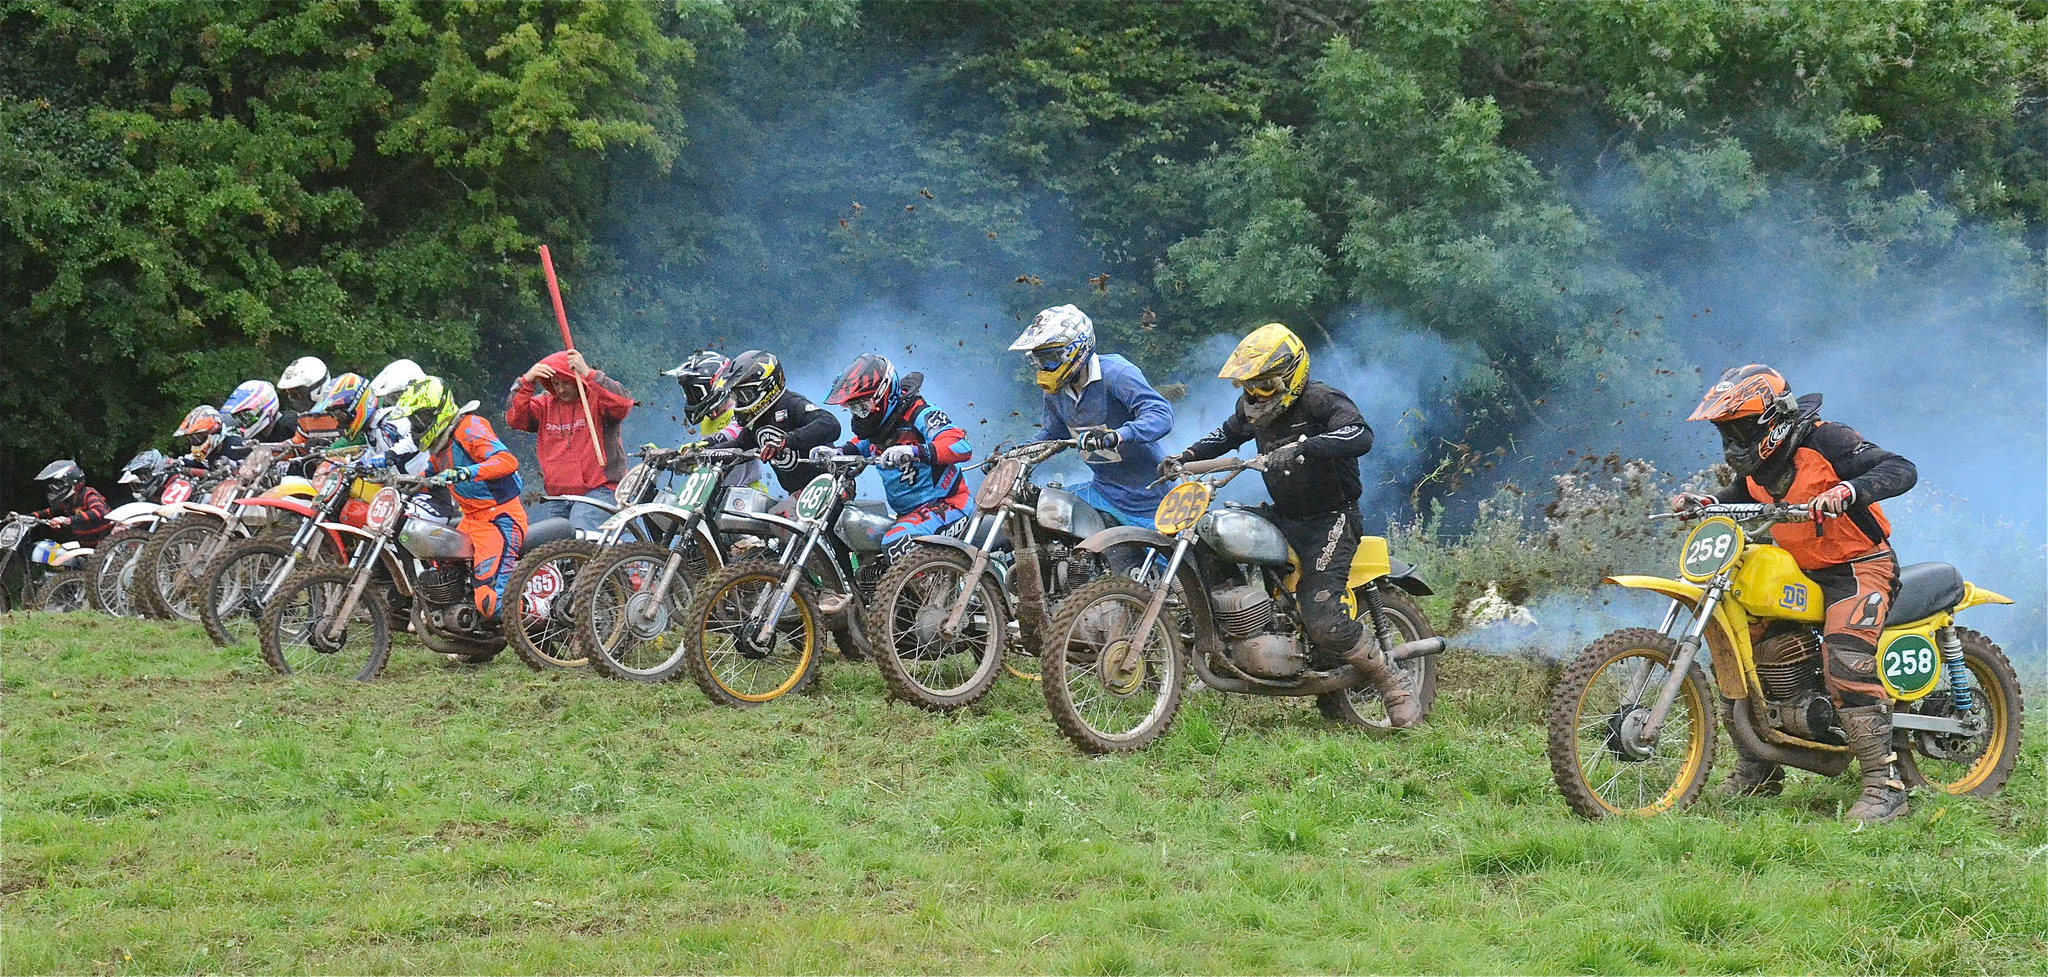 Llanthony Classic Scramble Photos September 2015 classicdirtbikerider.com..56